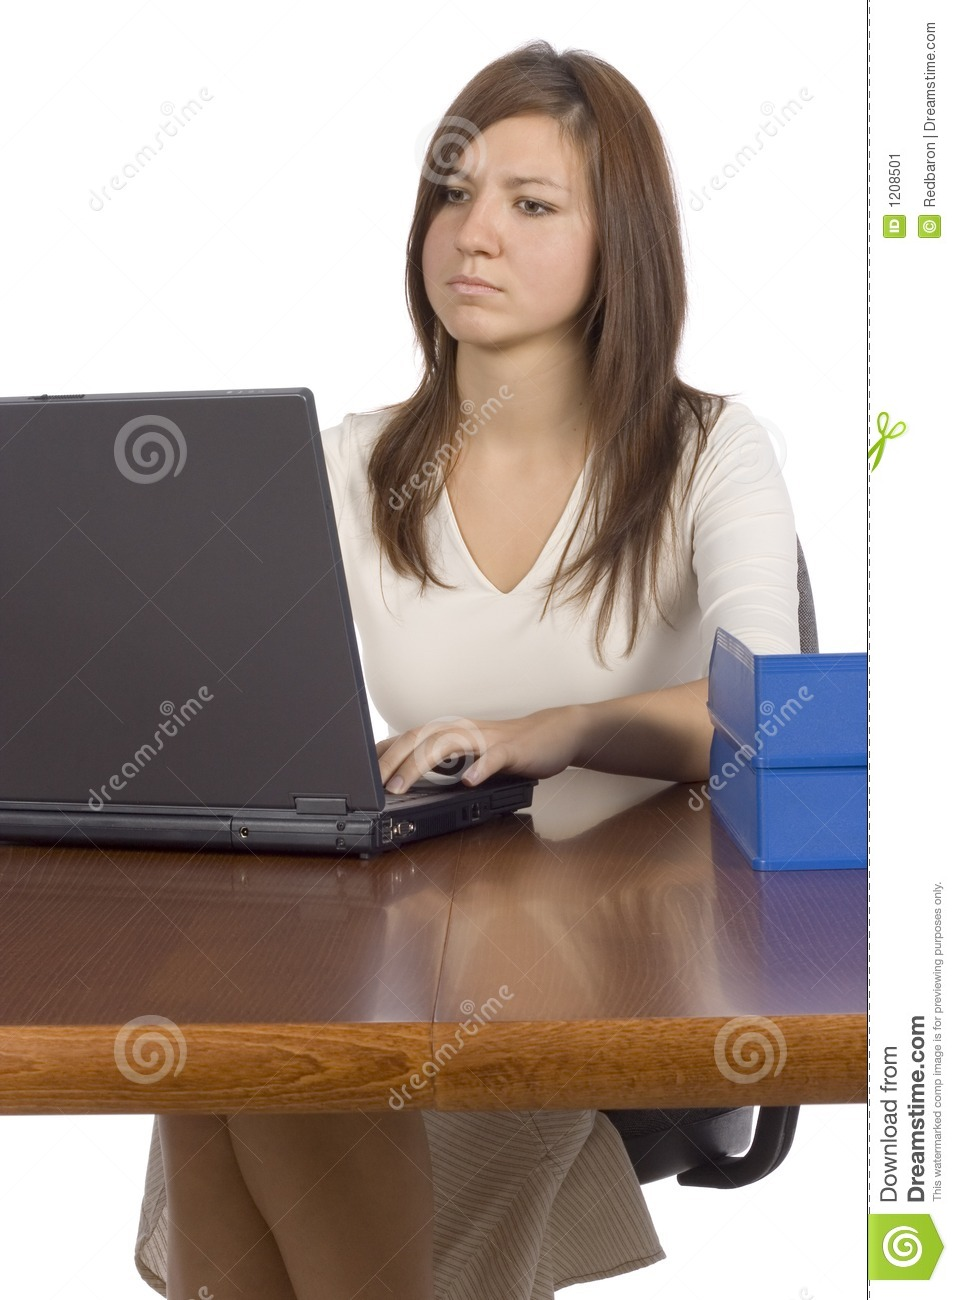 Female Office Worker Working Computer Stock Image  Image